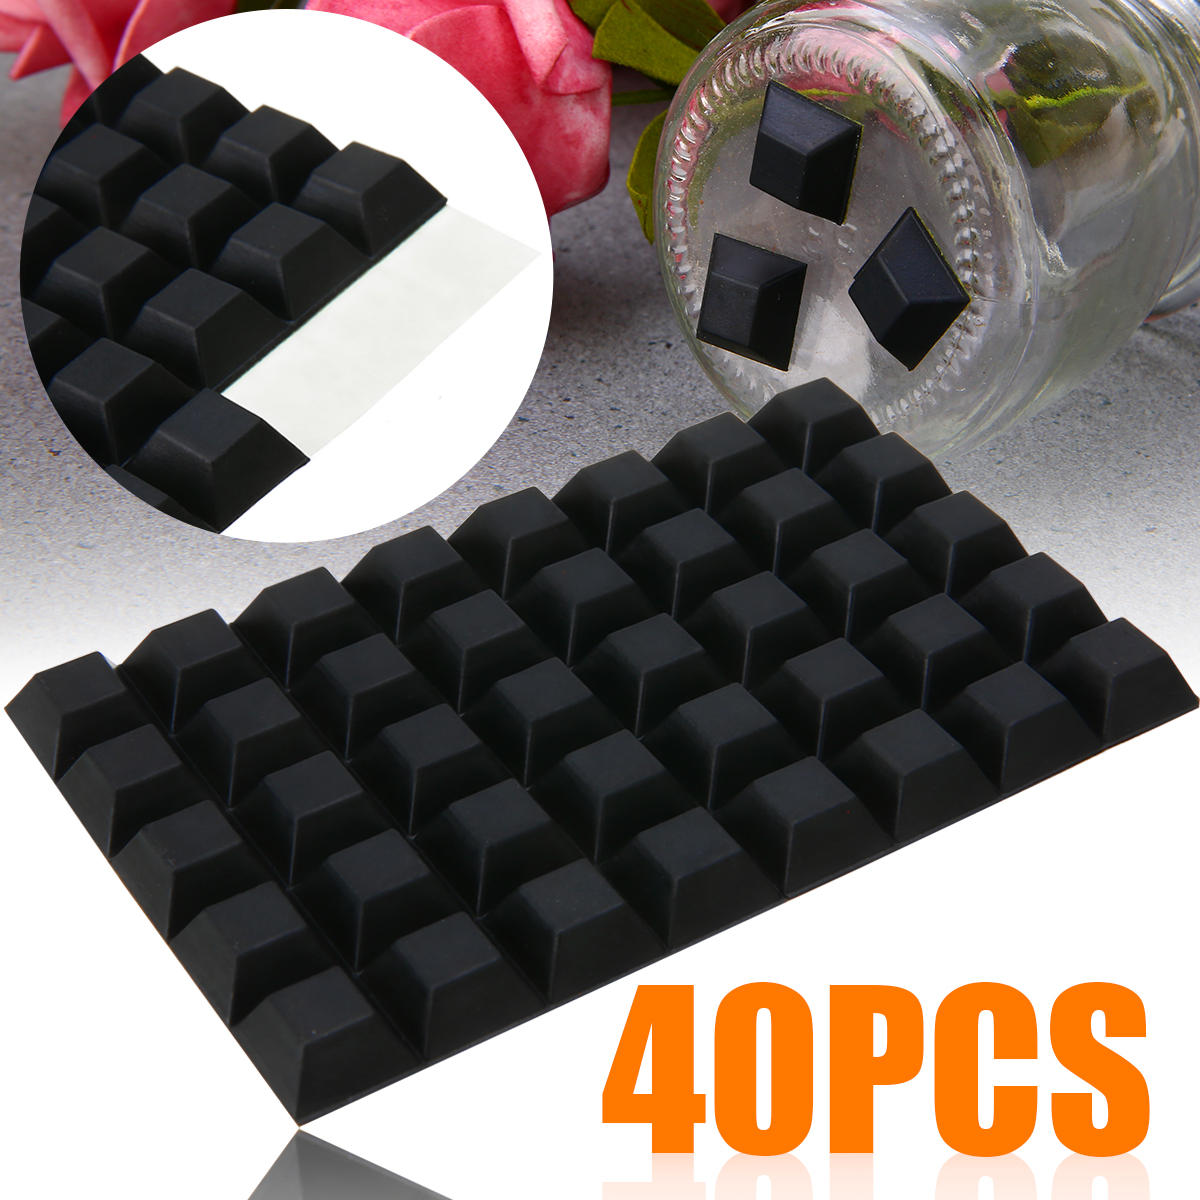 40pcs Self-Adhesive Rubber Bumper Stop Non-slip Feet Door Buffer Pads Wall Protectors Door Stopper For Furniture Accessory Black